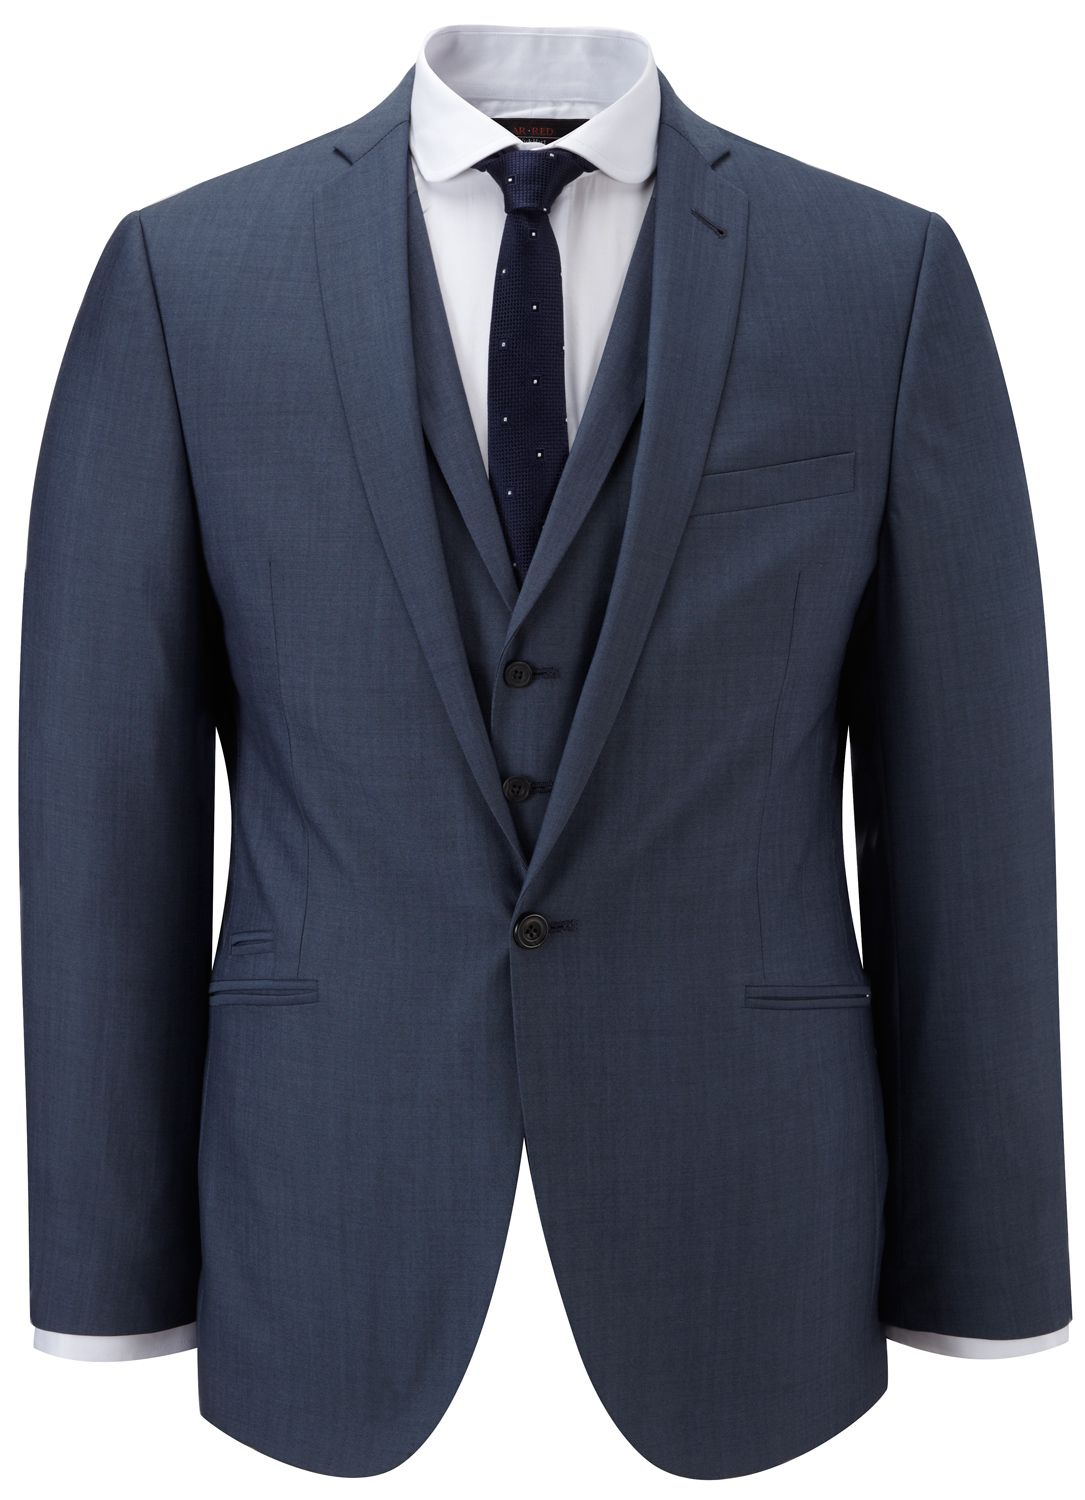 Nick Hart Airforce Notch Lapel Jacket Summer Suits Austin Reed Navy Blue Suit Wedding Blue Suit Wedding